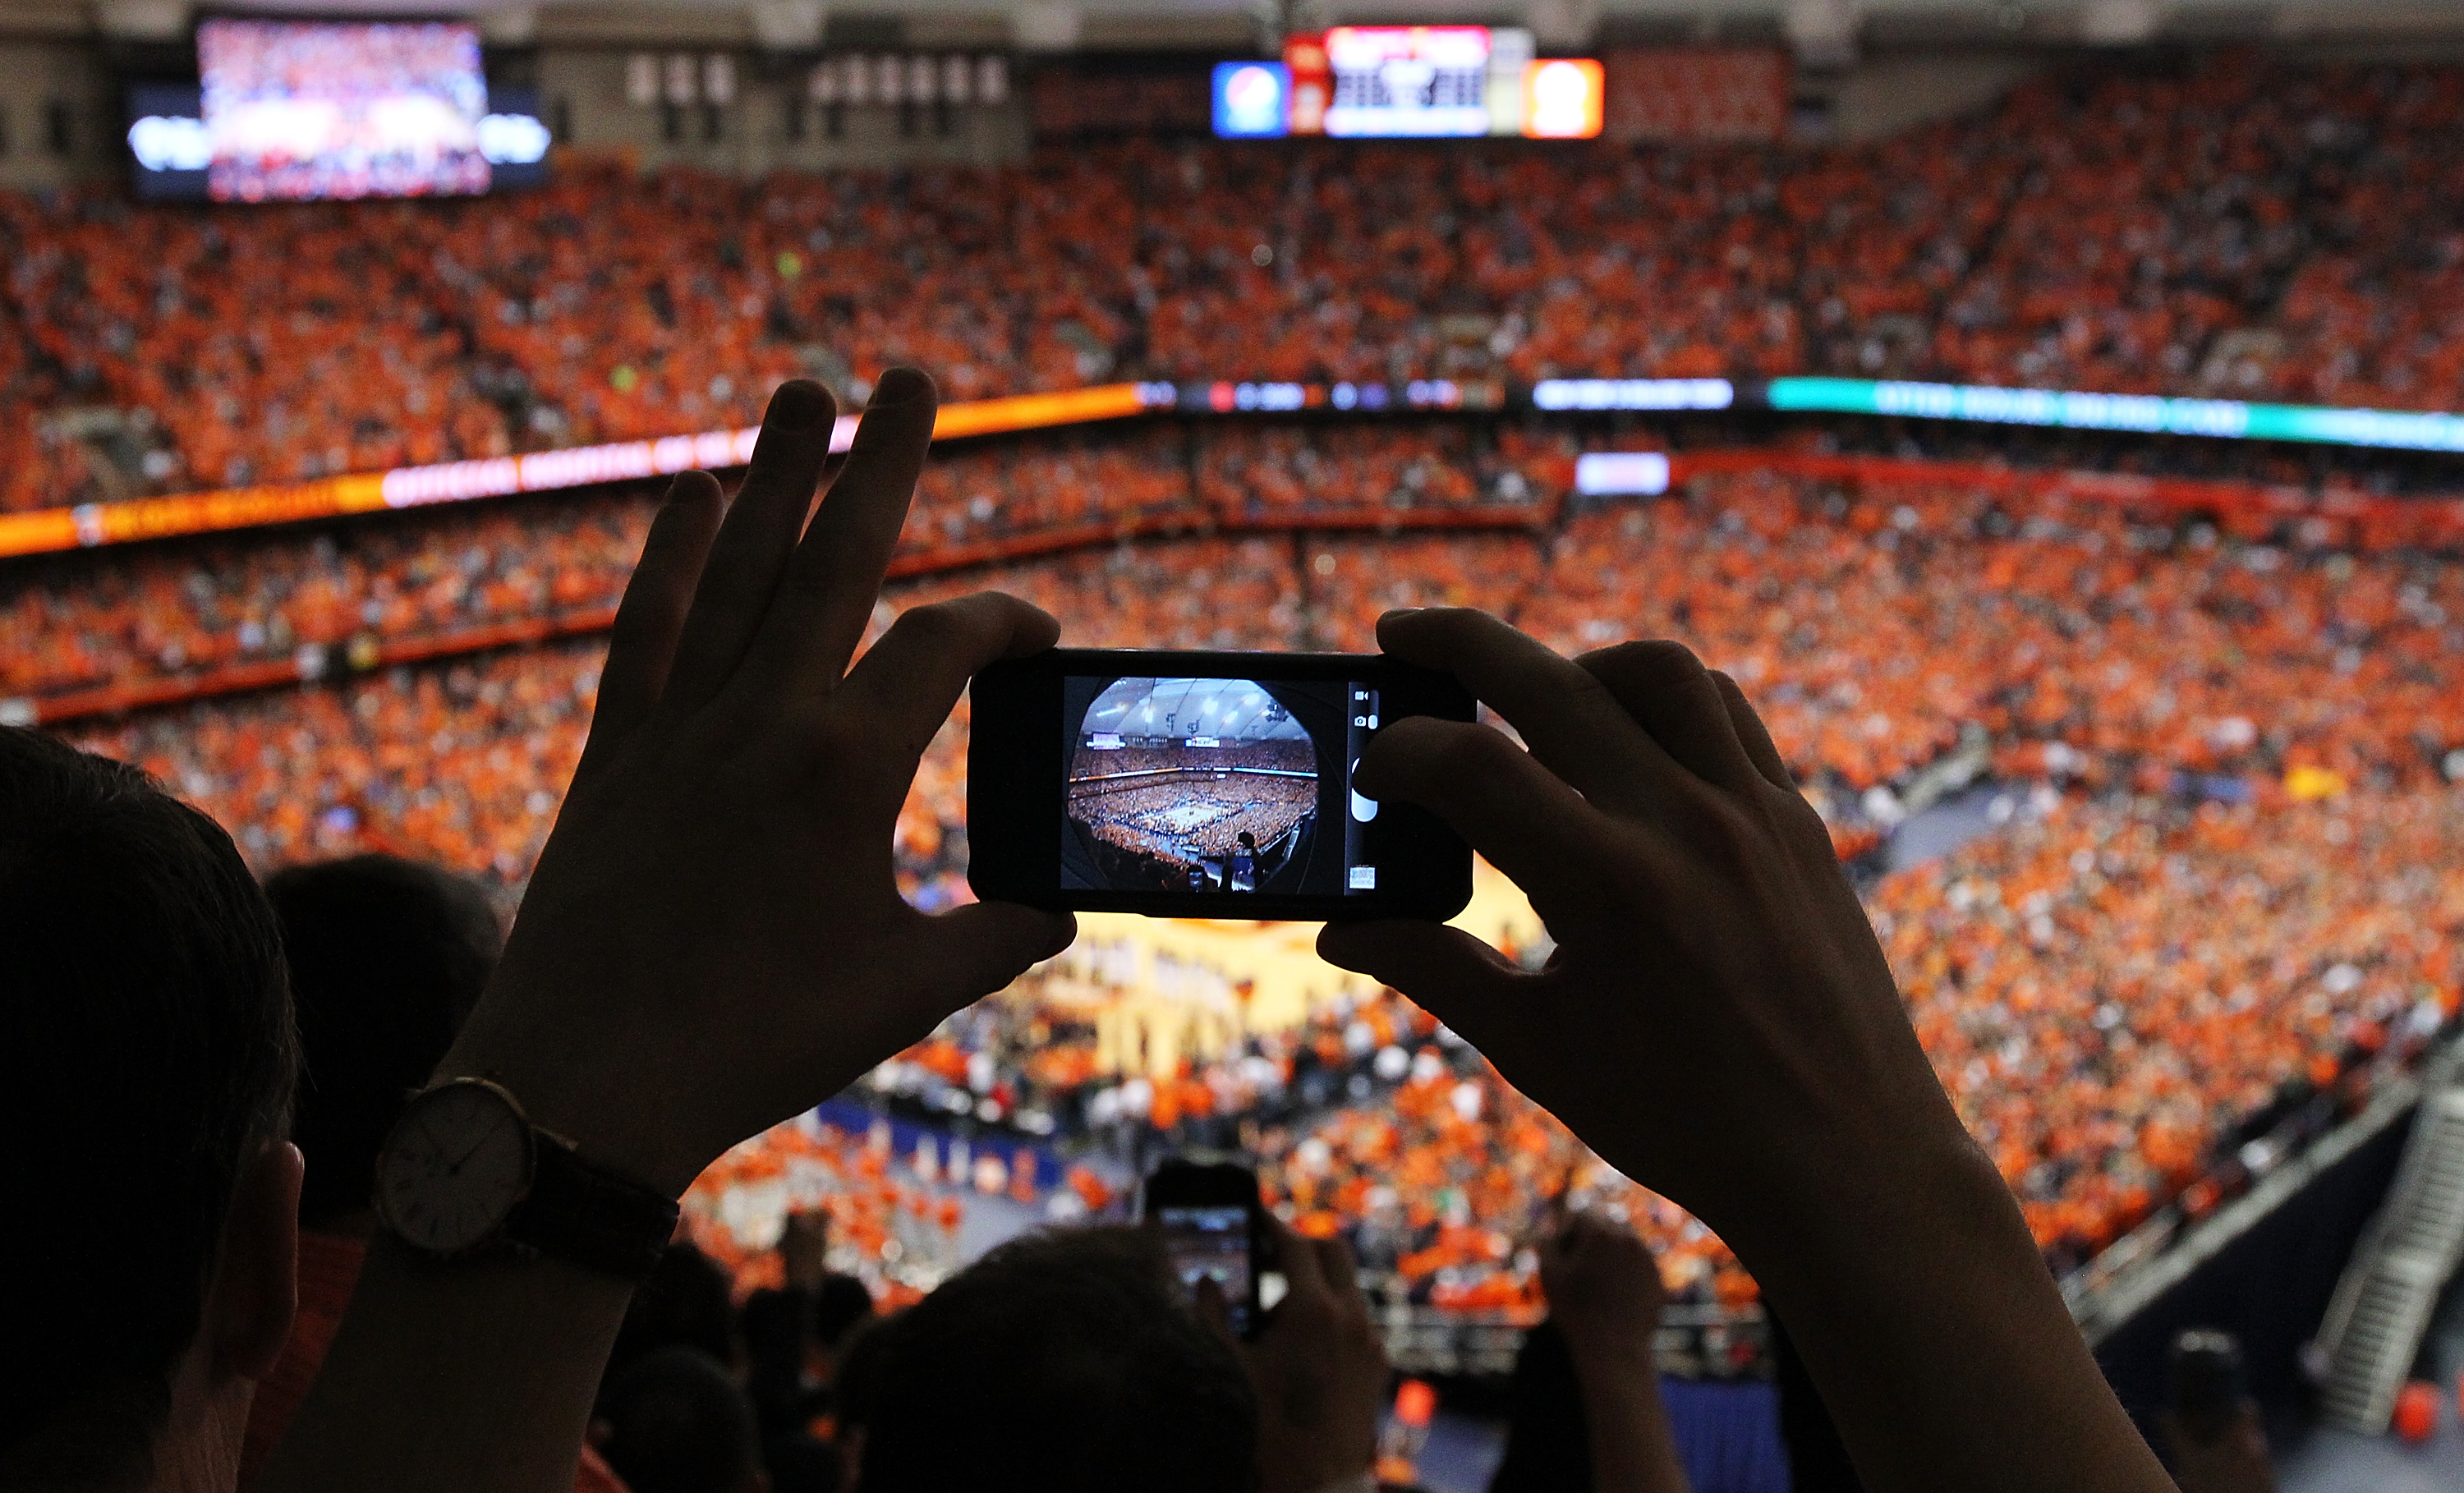 A general view of the Carrier Dome seen through a camera on an iPhone of a fan in the stands at the start of the game between the Syracuse Orange and the Georgetown Hoyas on February 23, 2013 in Syracuse, New York.